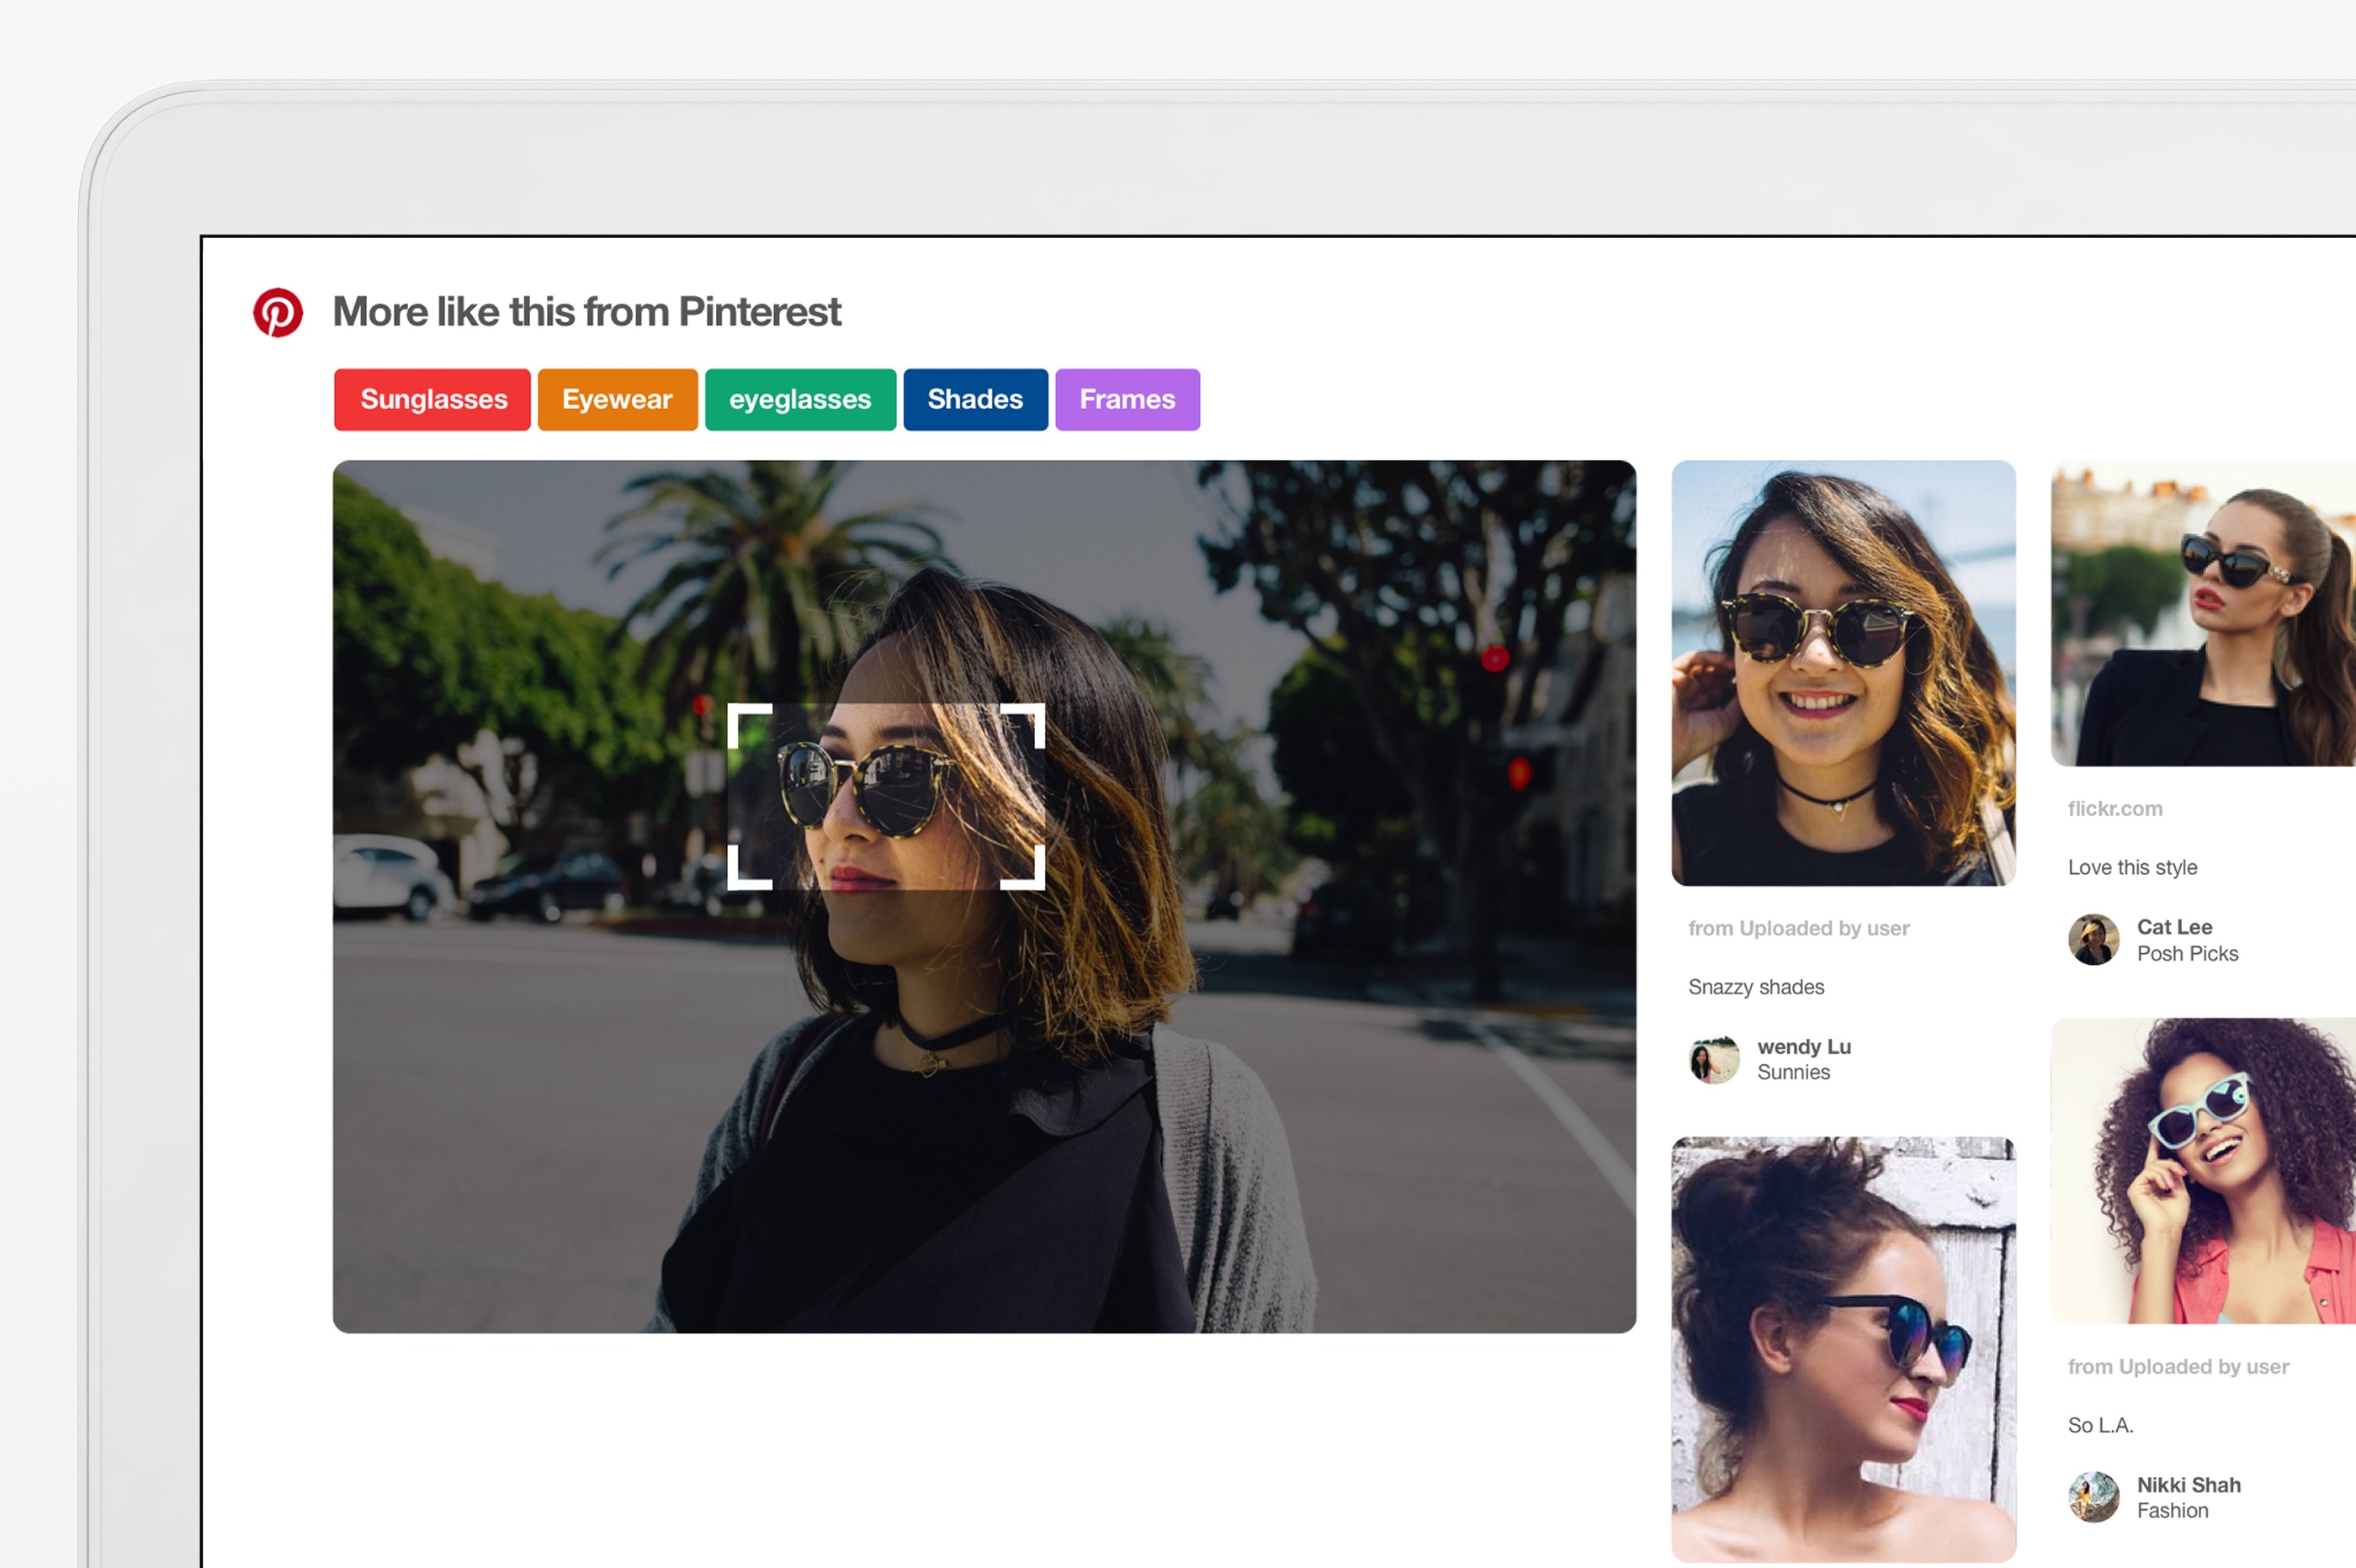 Pinterest Announces Ability to Search Any Image on the Web for Related Pins | Social Media Today